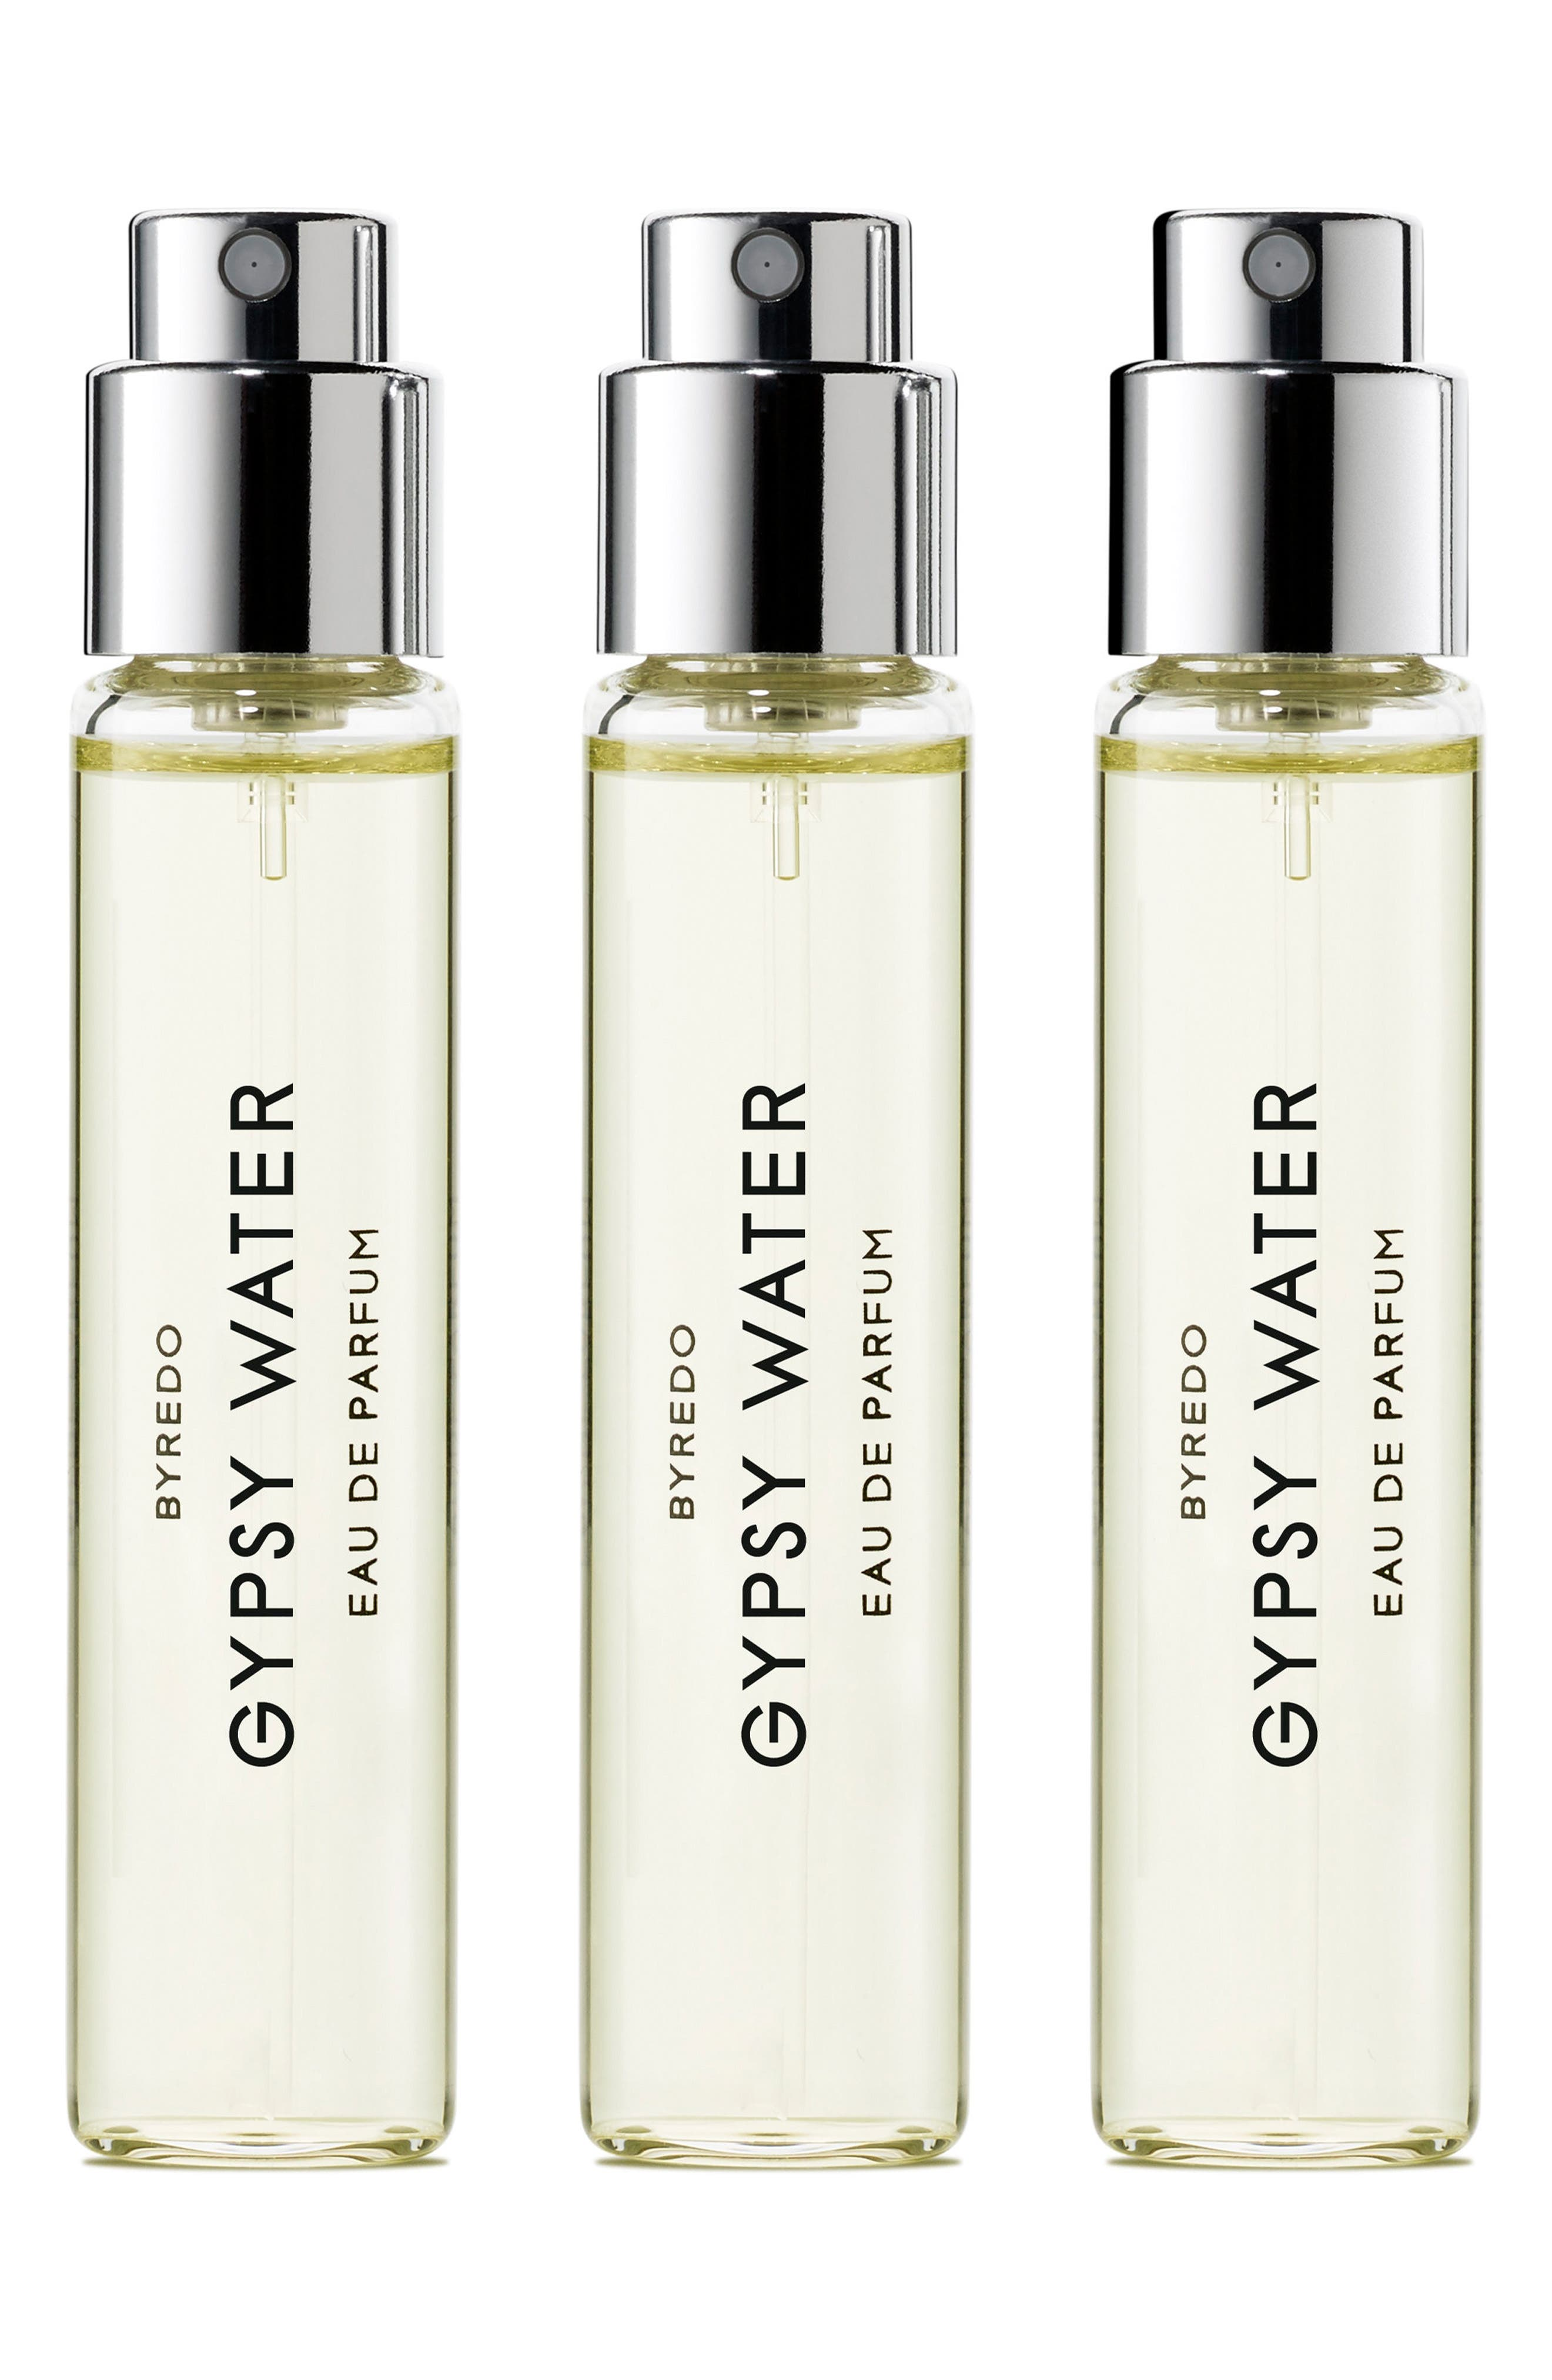 Alternate Image 1 Selected - BYREDO Gypsy Water Eau de Parfum Travel Spray Trio